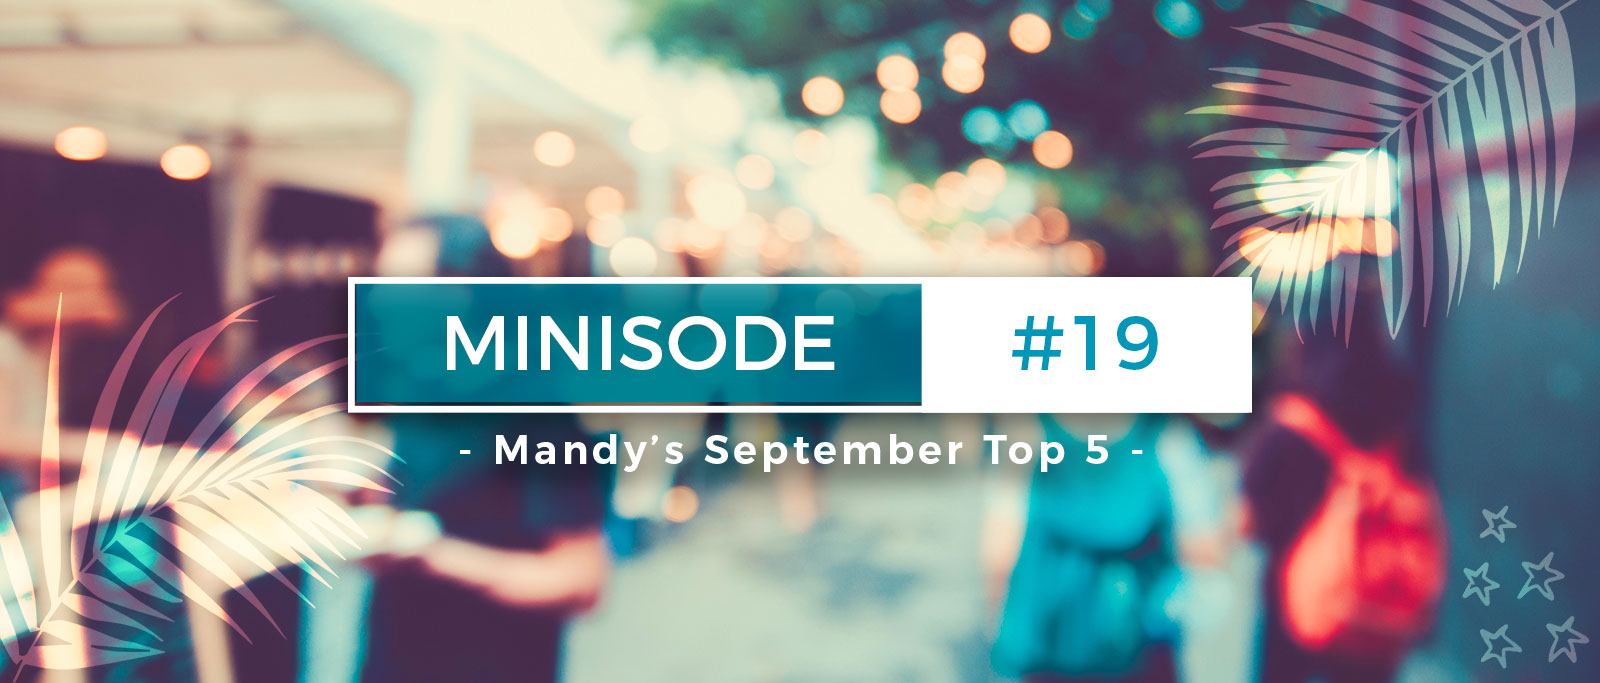 minisode-19-september-top-5